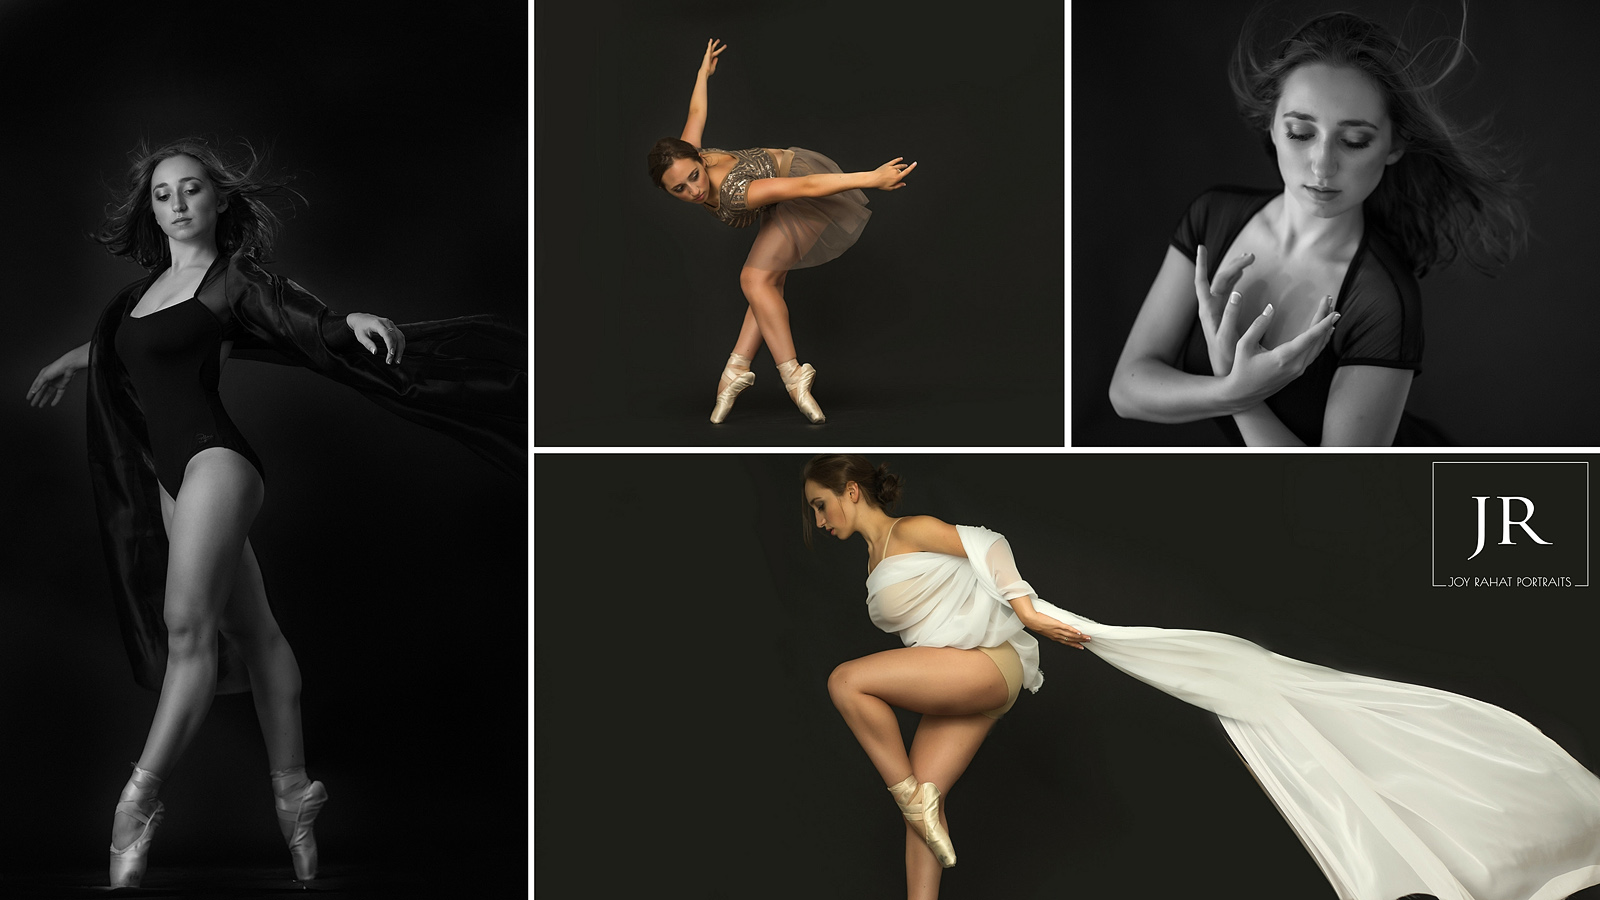 fine art ballet dance portrait photographer joy Rahat